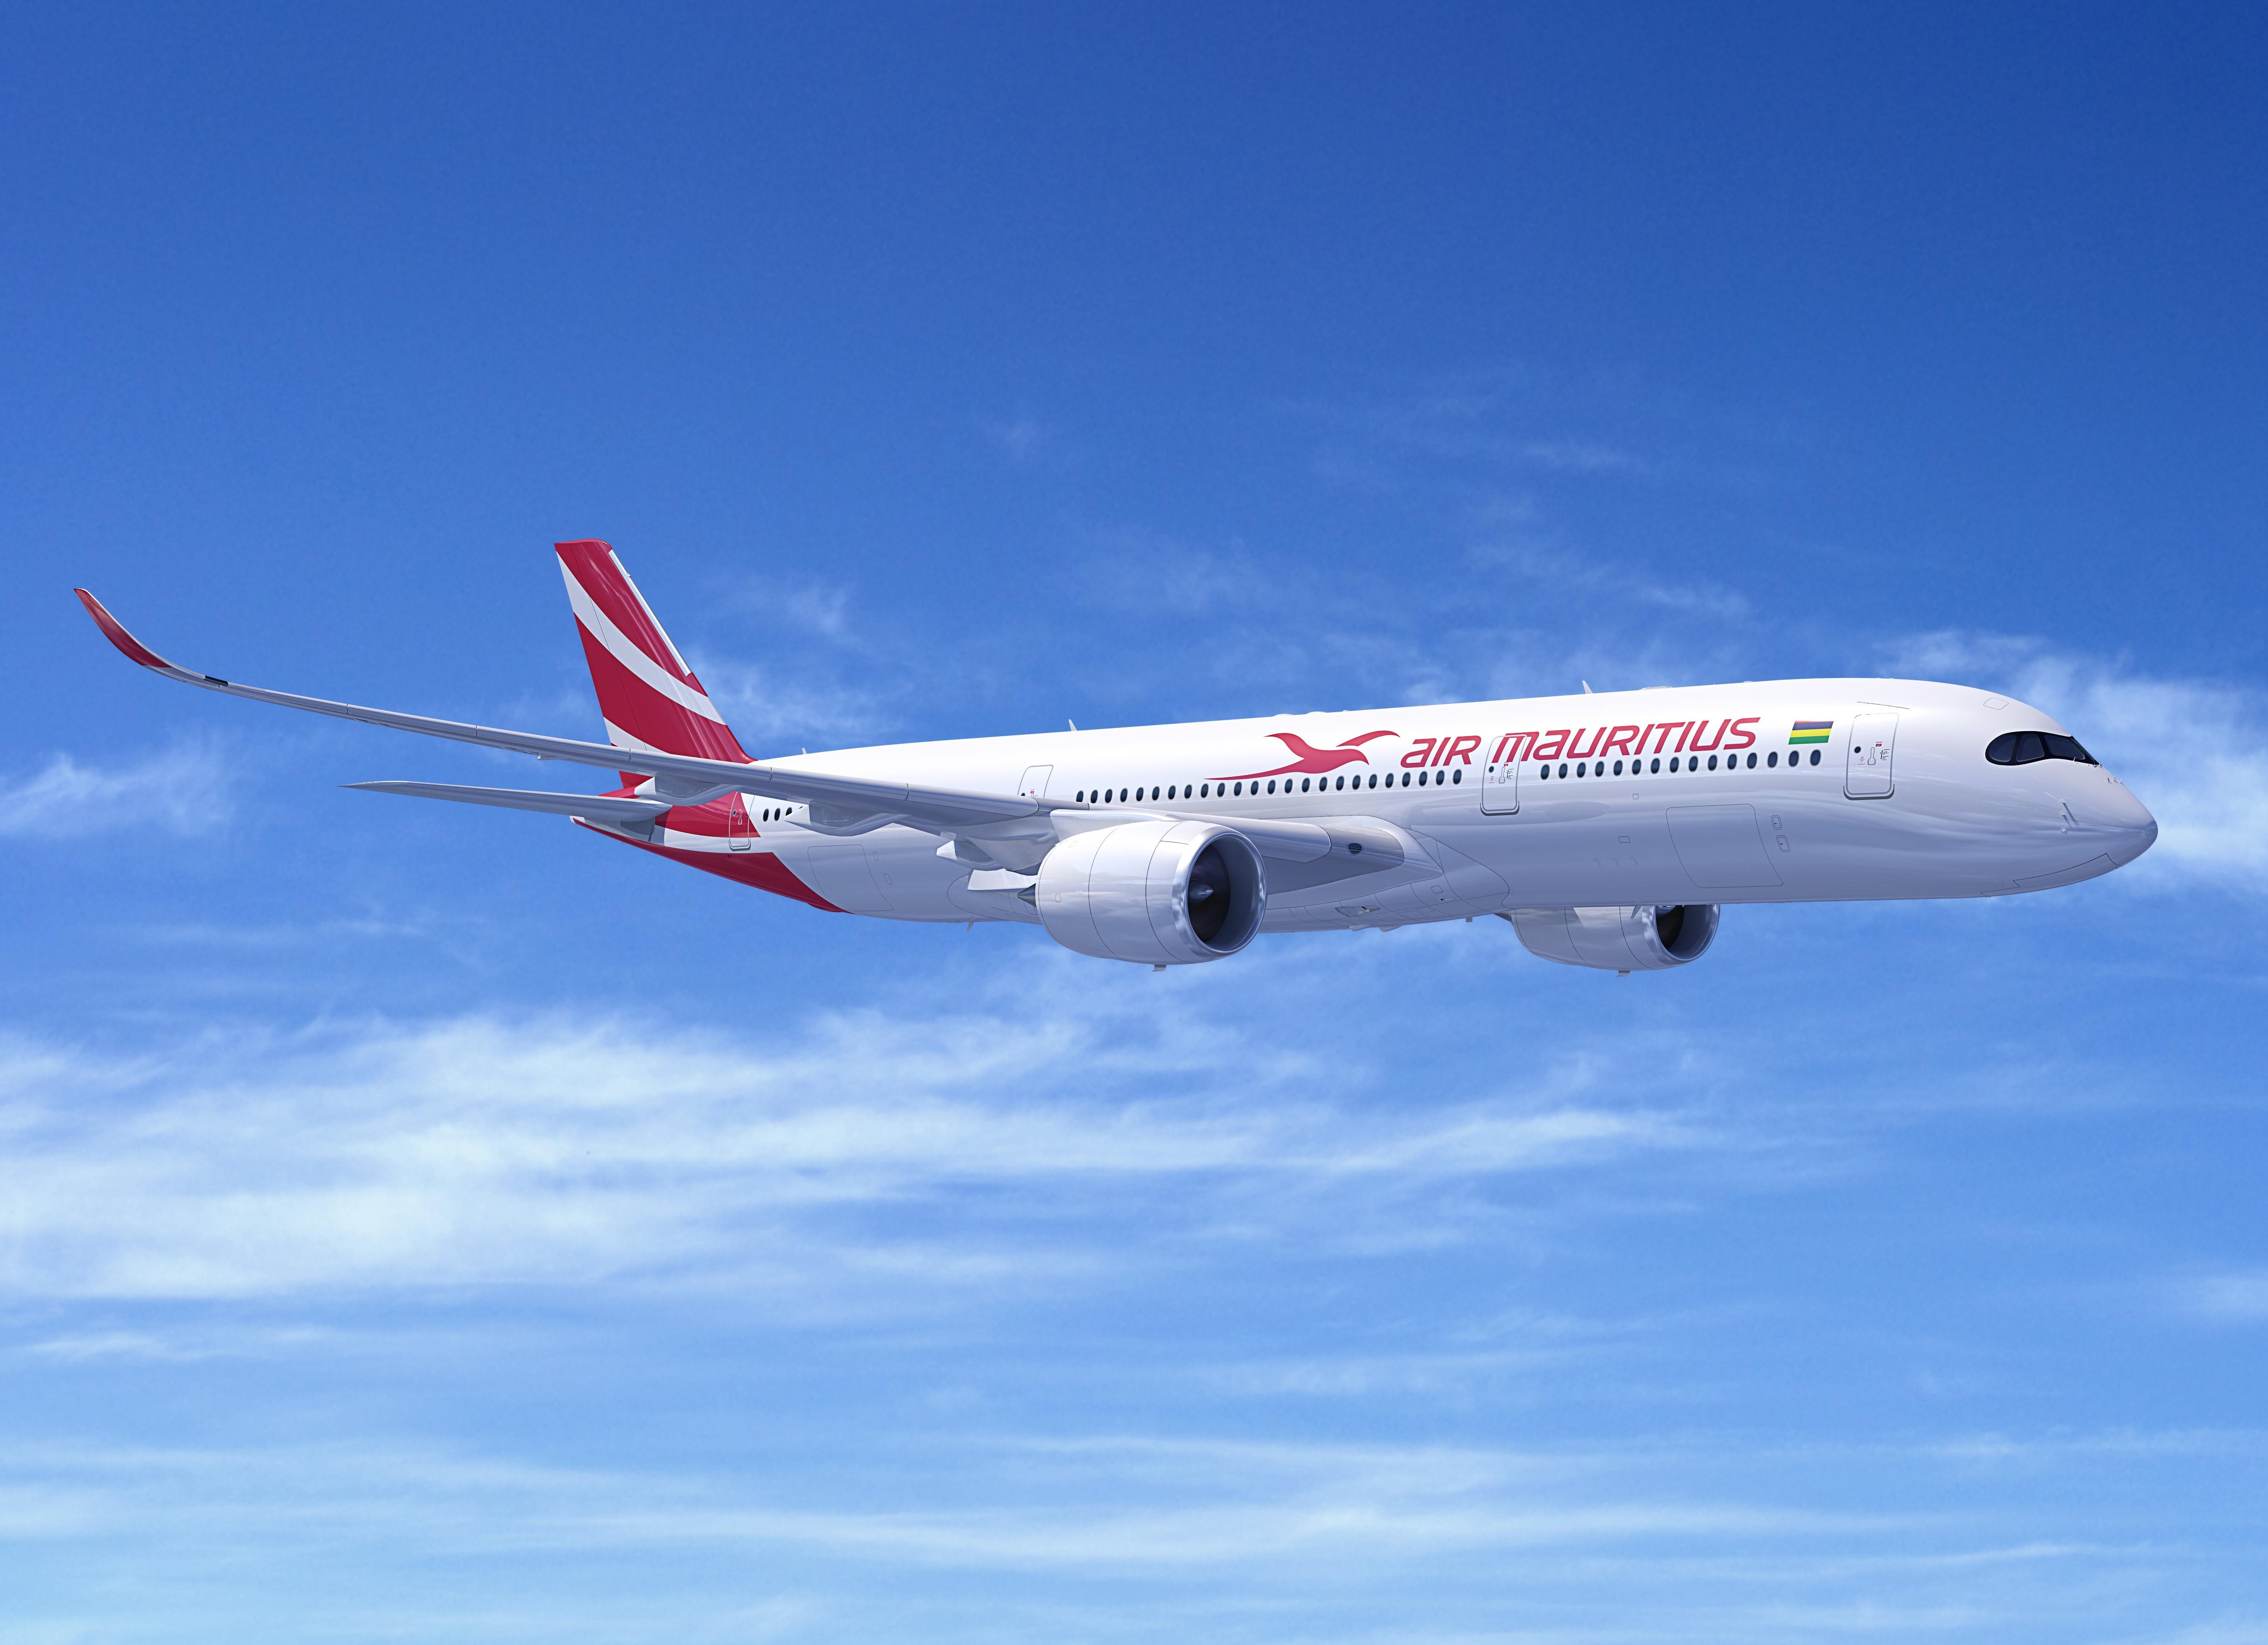 Air Mauritius A350XWD - www.smademedia.com